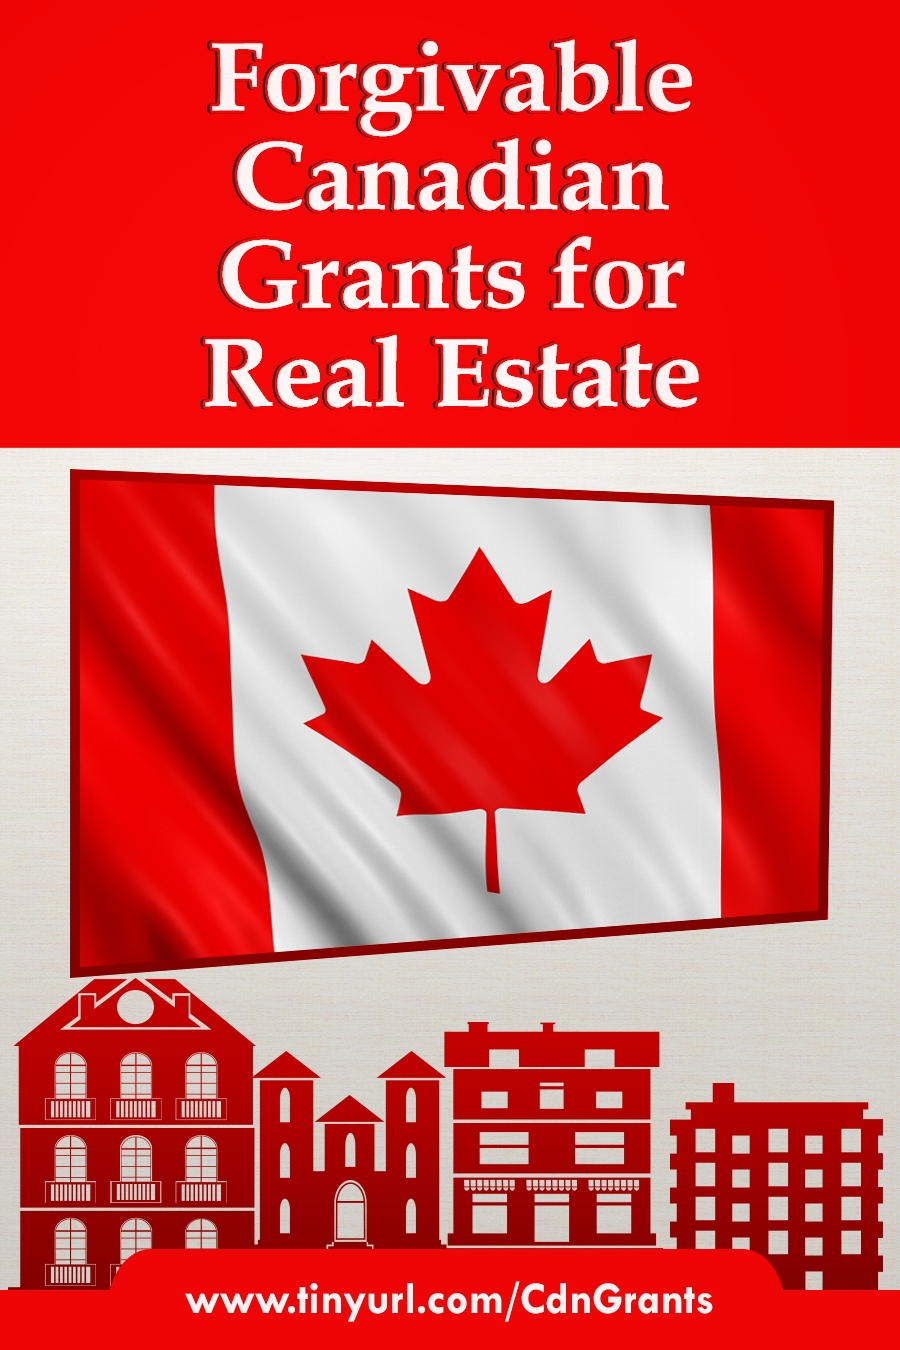 Flipping4Profit, Canadian Real Estate Investment Seminar, Real Estate Investors Training, Government Grants Canada,  Forgivable Canadian grants, business grants, Government Grants, Real estate grants, Forgivable grants